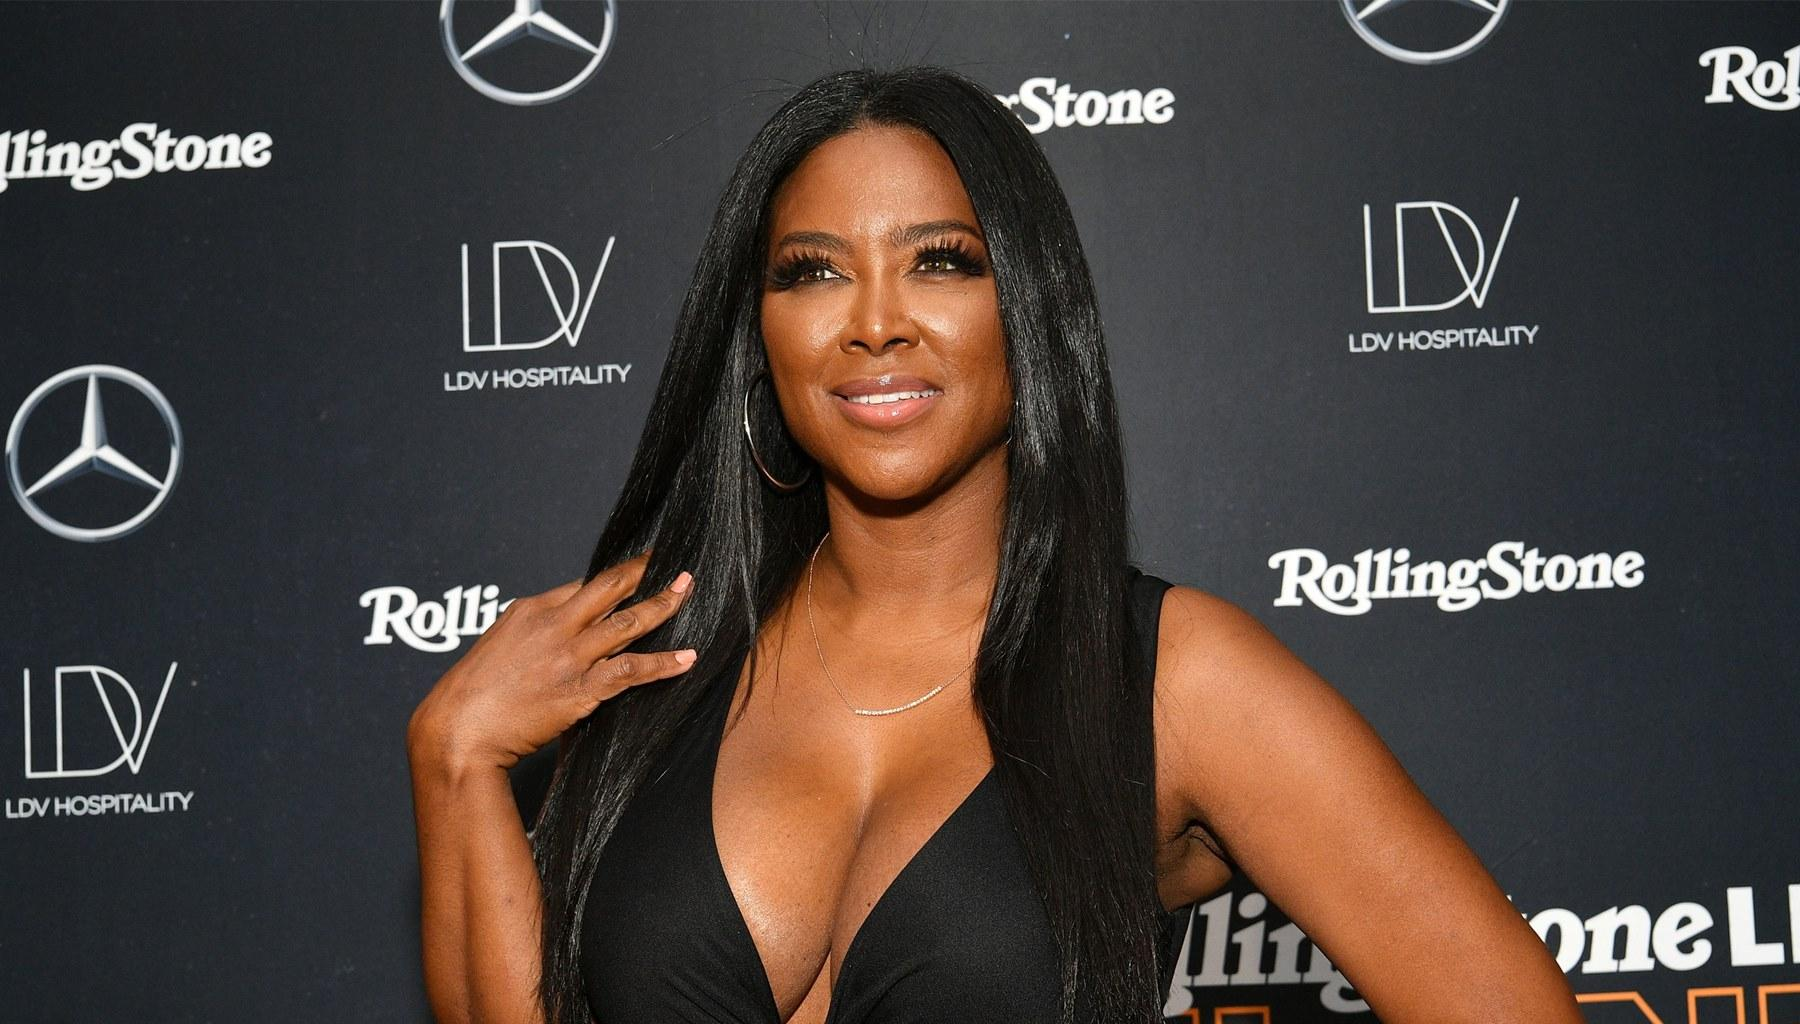 Kenya Moore Shows Marc Daly What He Is Missing In Alluring Cleavage Photo -- Will Brooklyn's Parents Reconcile?